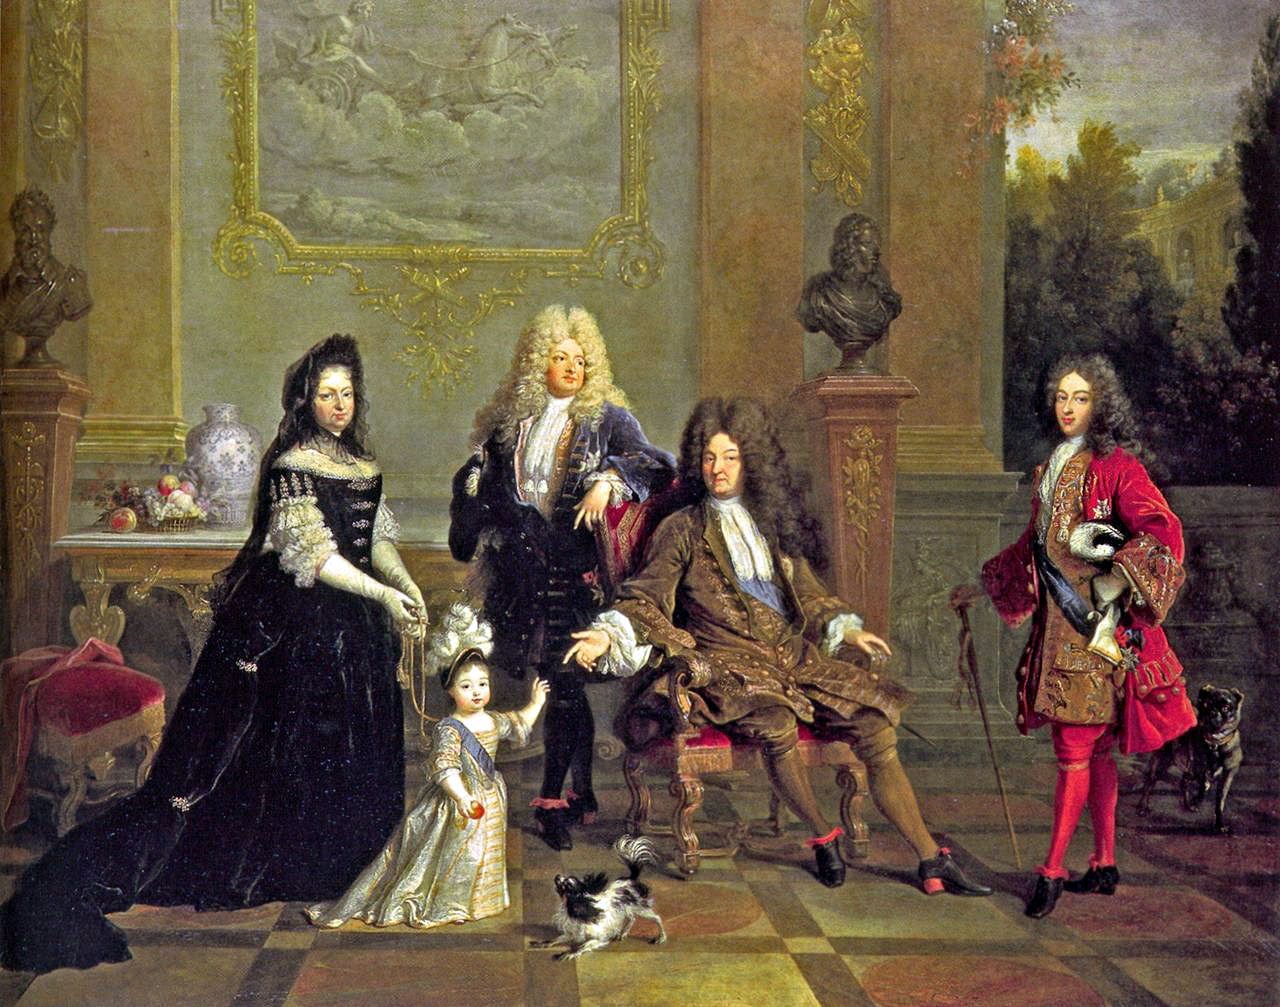 Shit, even the family portraits of Louis fucking XIV look humble and understated compared to this.